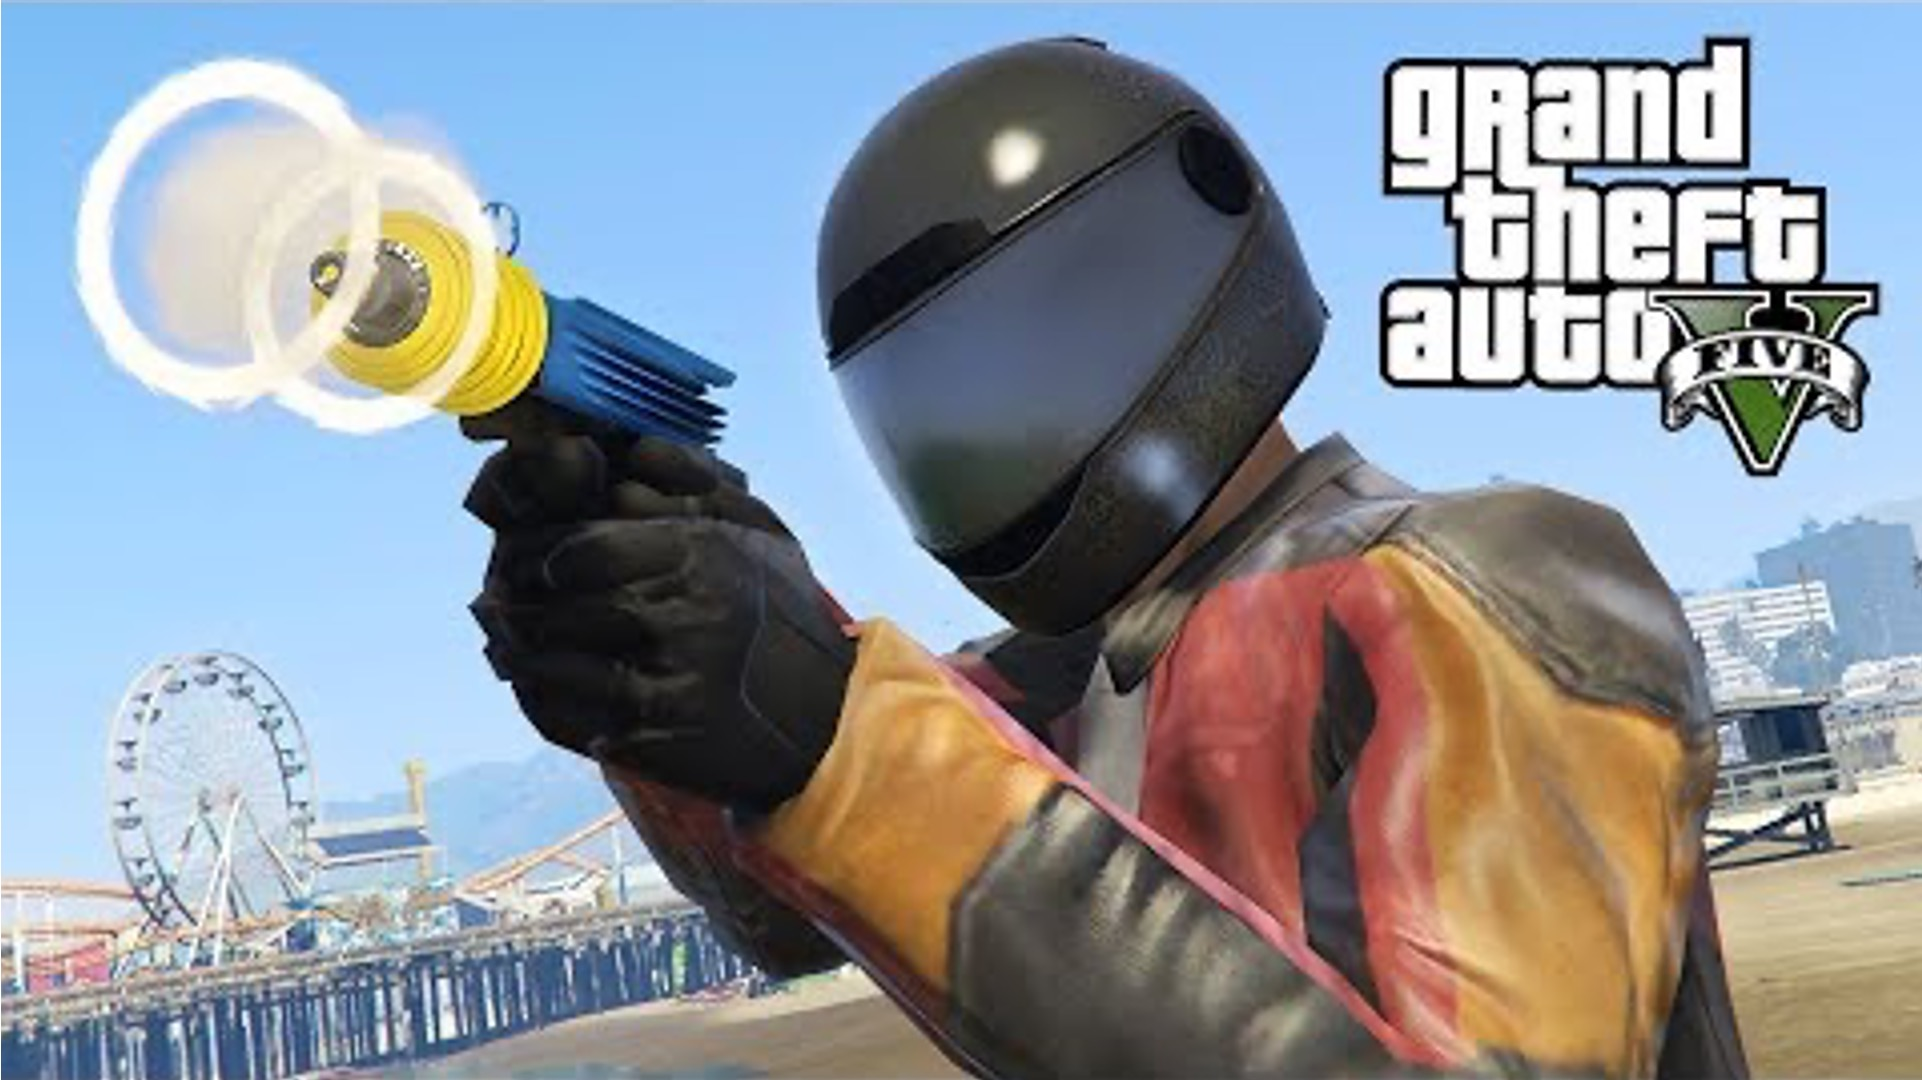 GTA 5 Up-n-Atomizer weapon